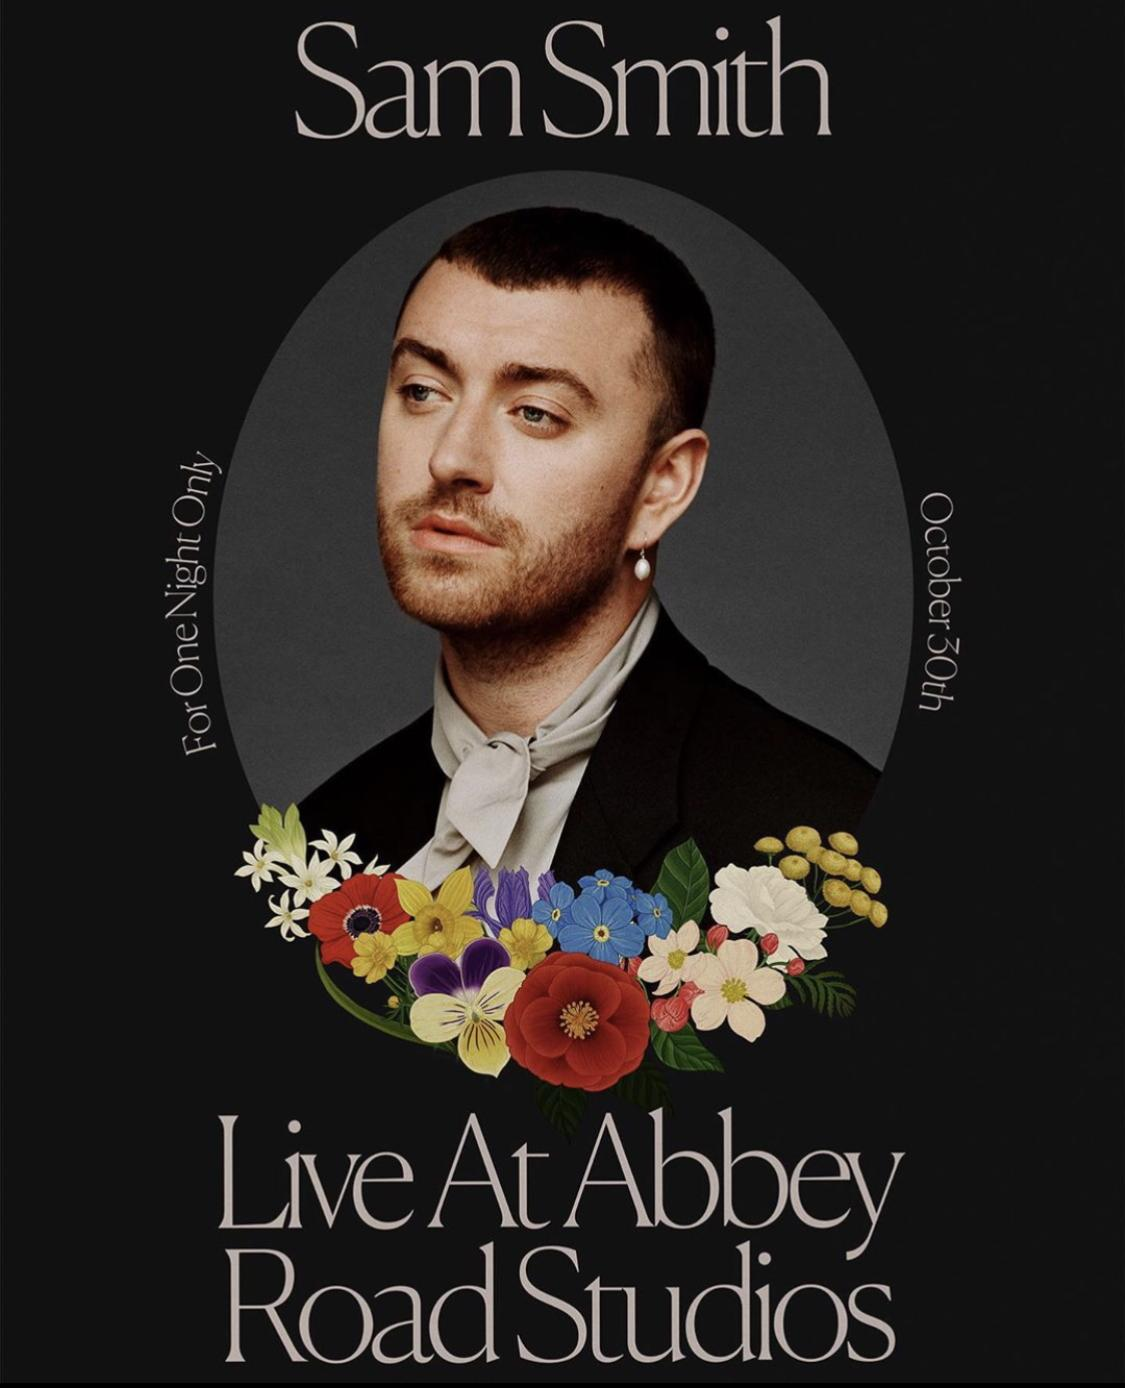 Sam Smith Live at Abbey Road Studios hd on soap2day